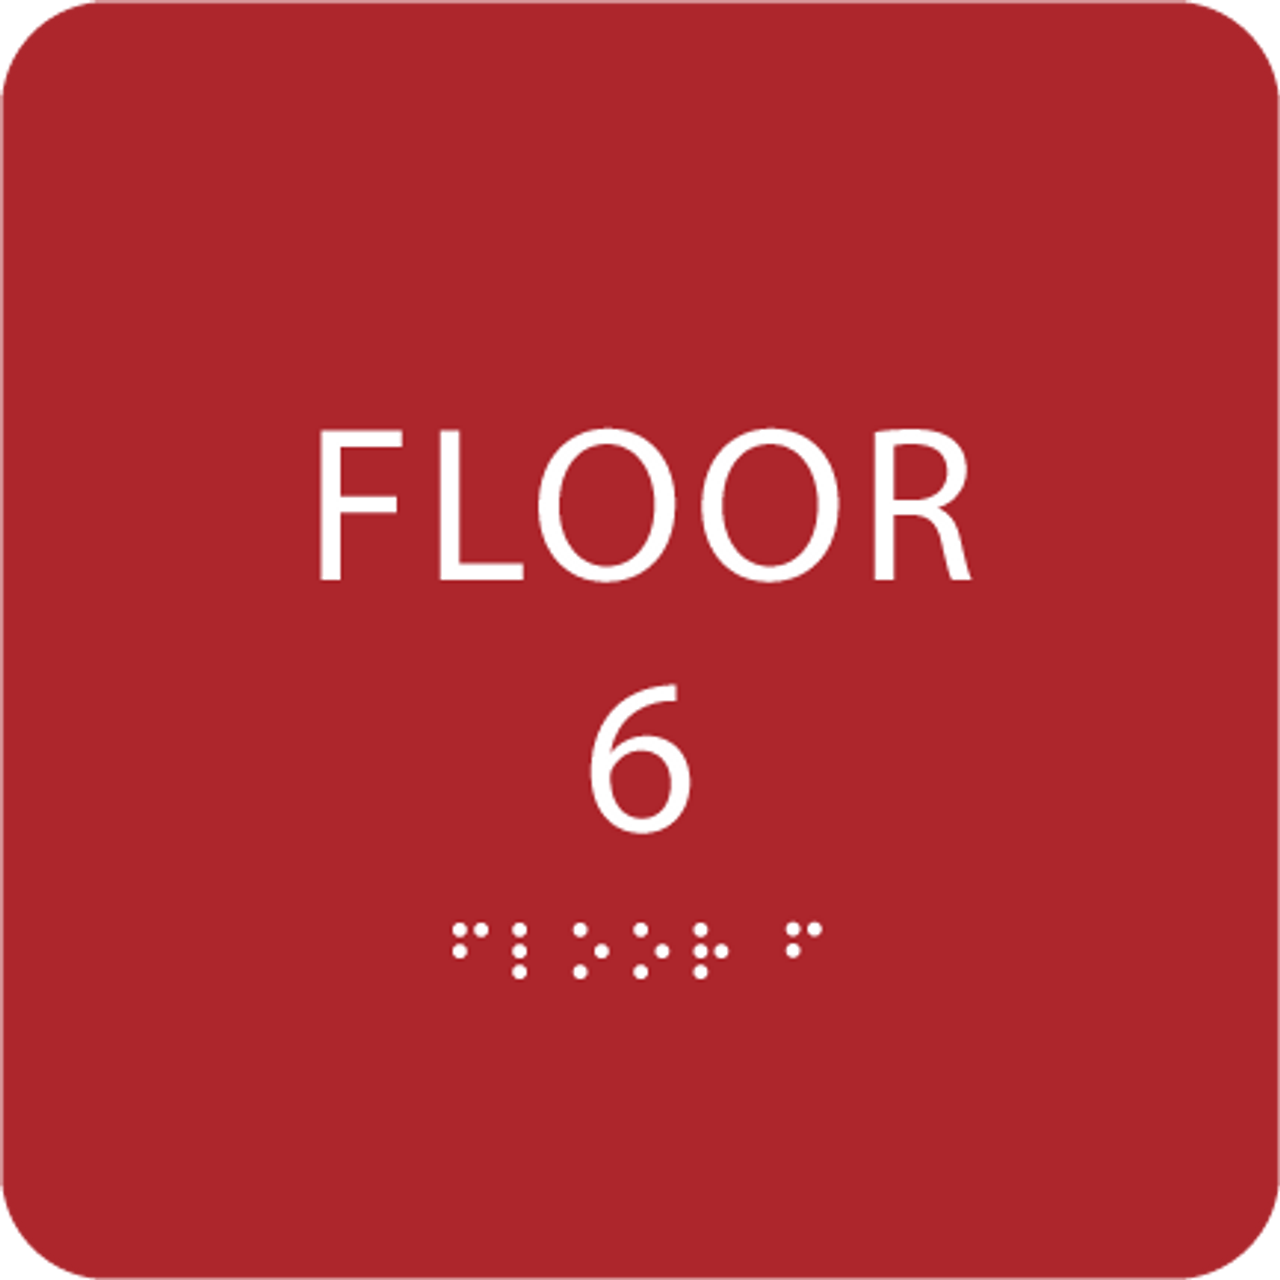 Red Floor 6 Level Identification ADA Sign